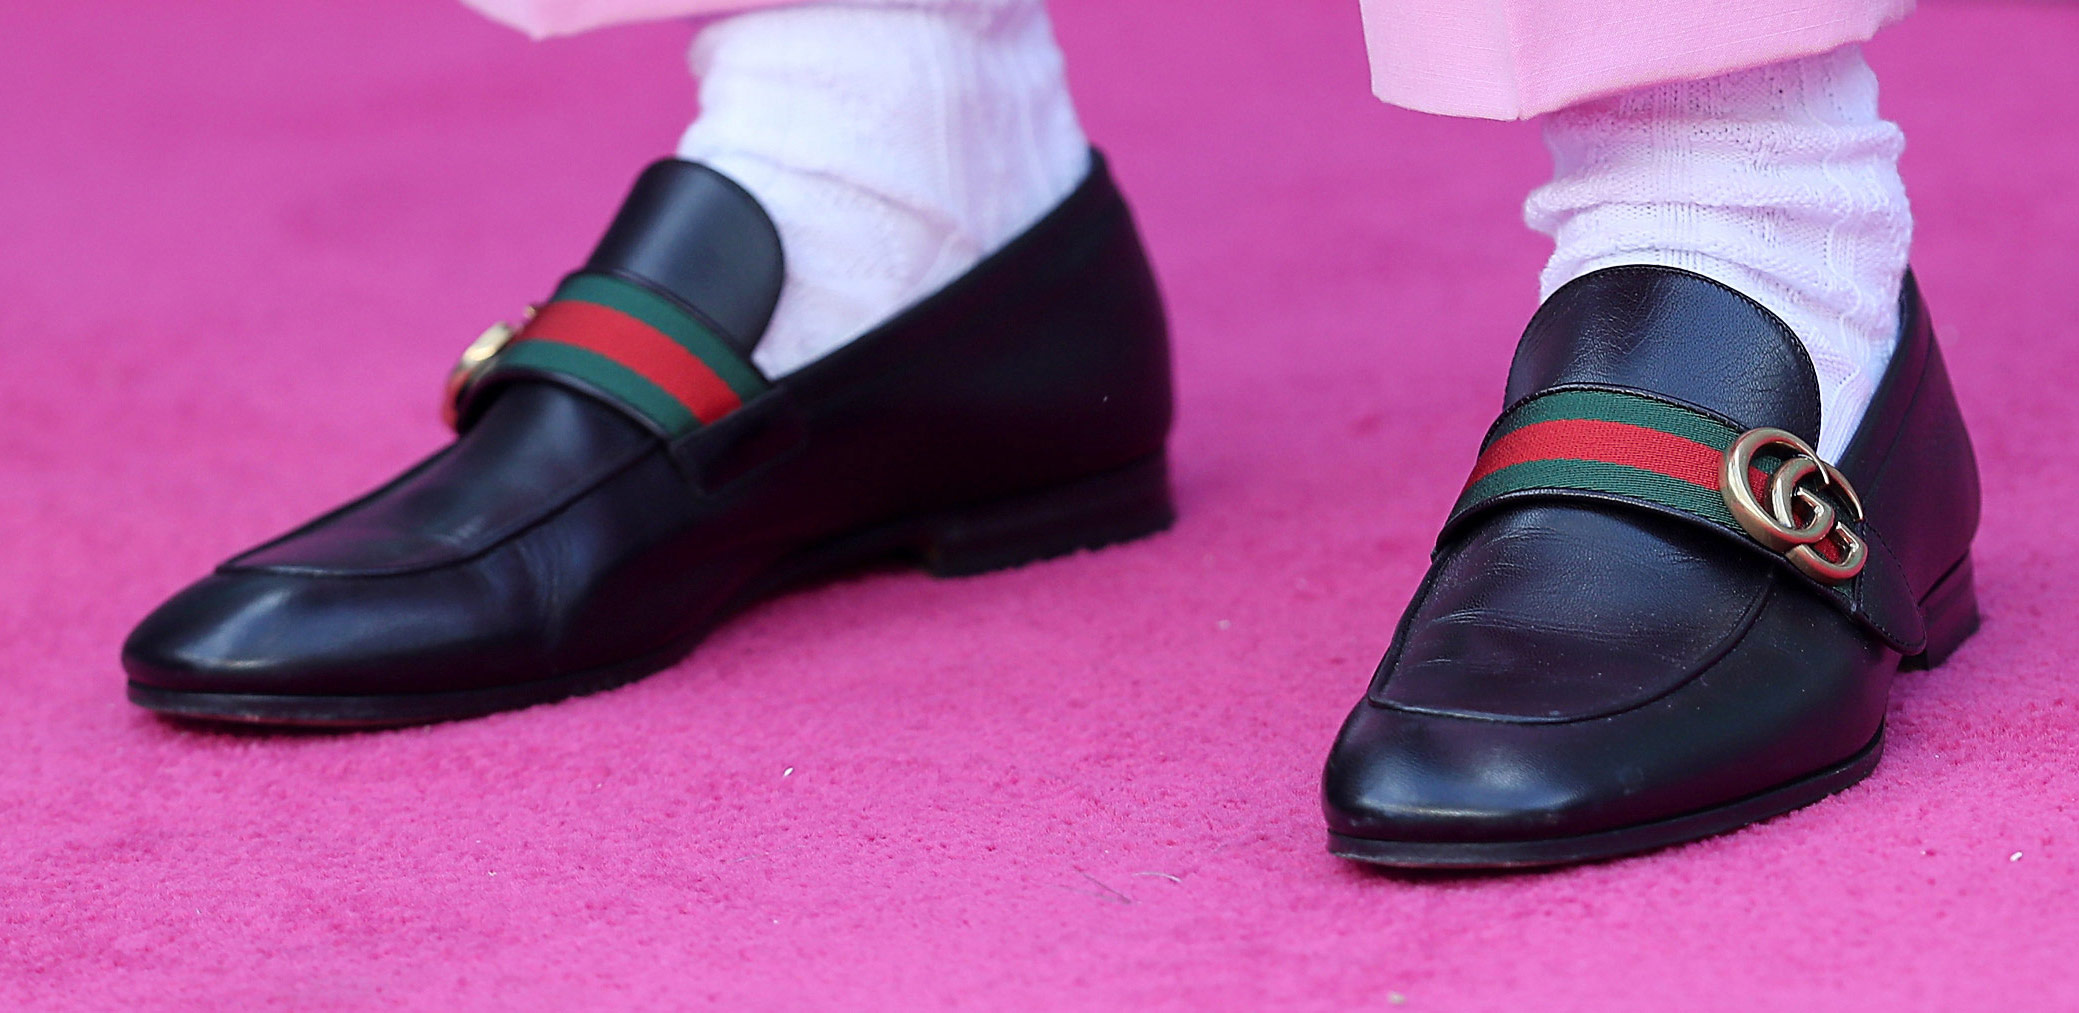 2cc84262b70ed Gucci Loafers Out of Reach? Try These Private Labels On for Size ...